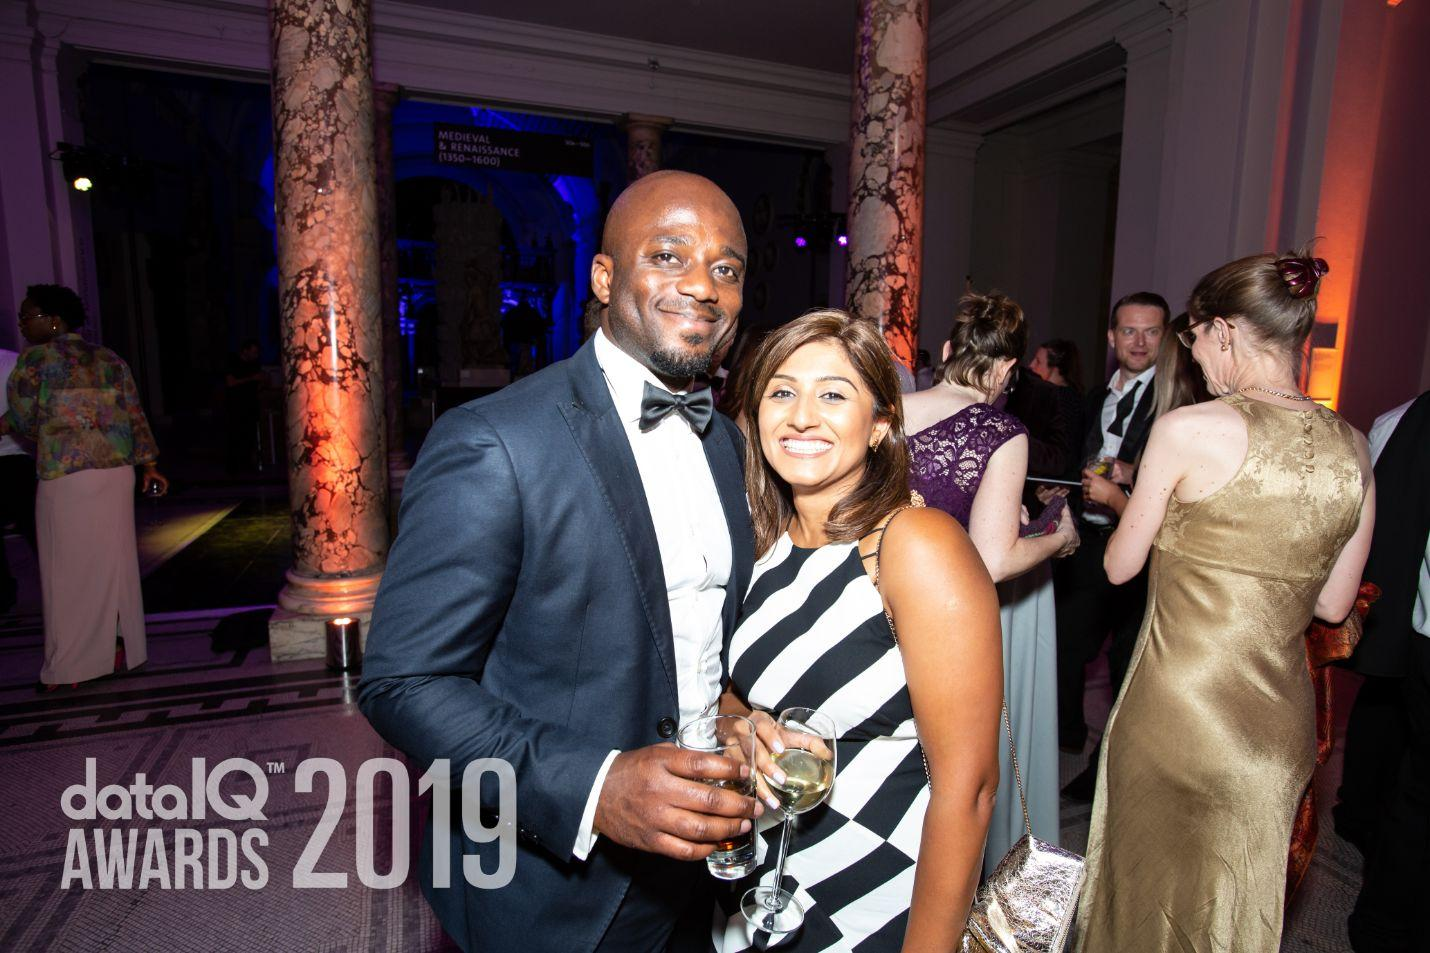 Awards 2019 Image 52